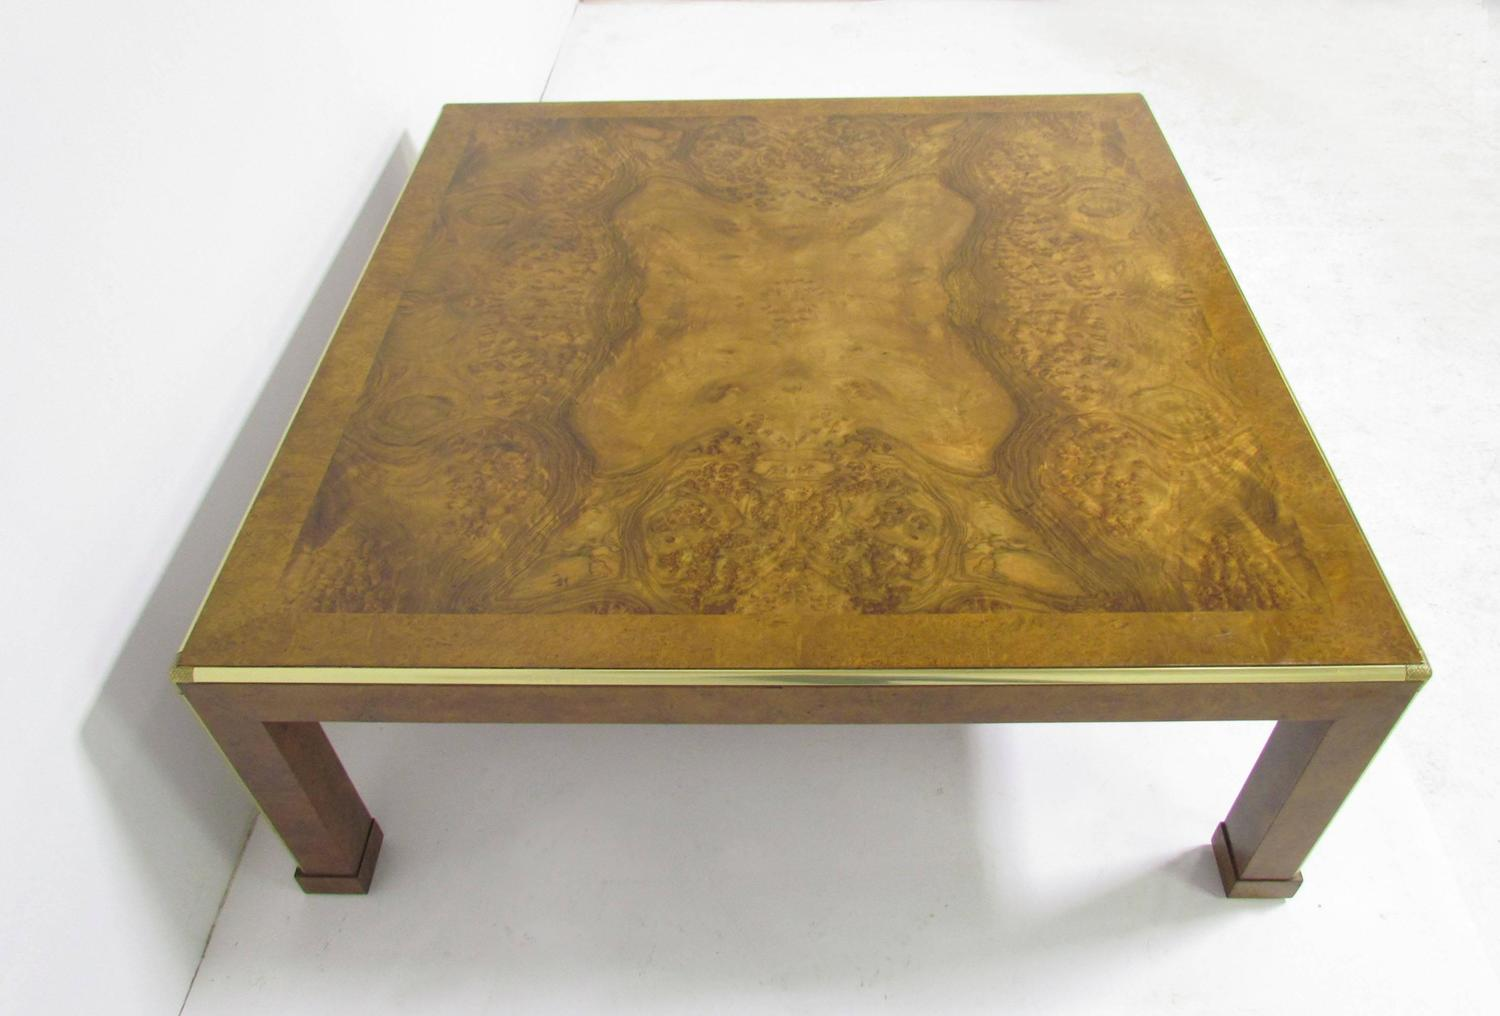 Baker Furniture Large Square Burl Wood Coffee Table Circa 1970s For Sale At 1stdibs